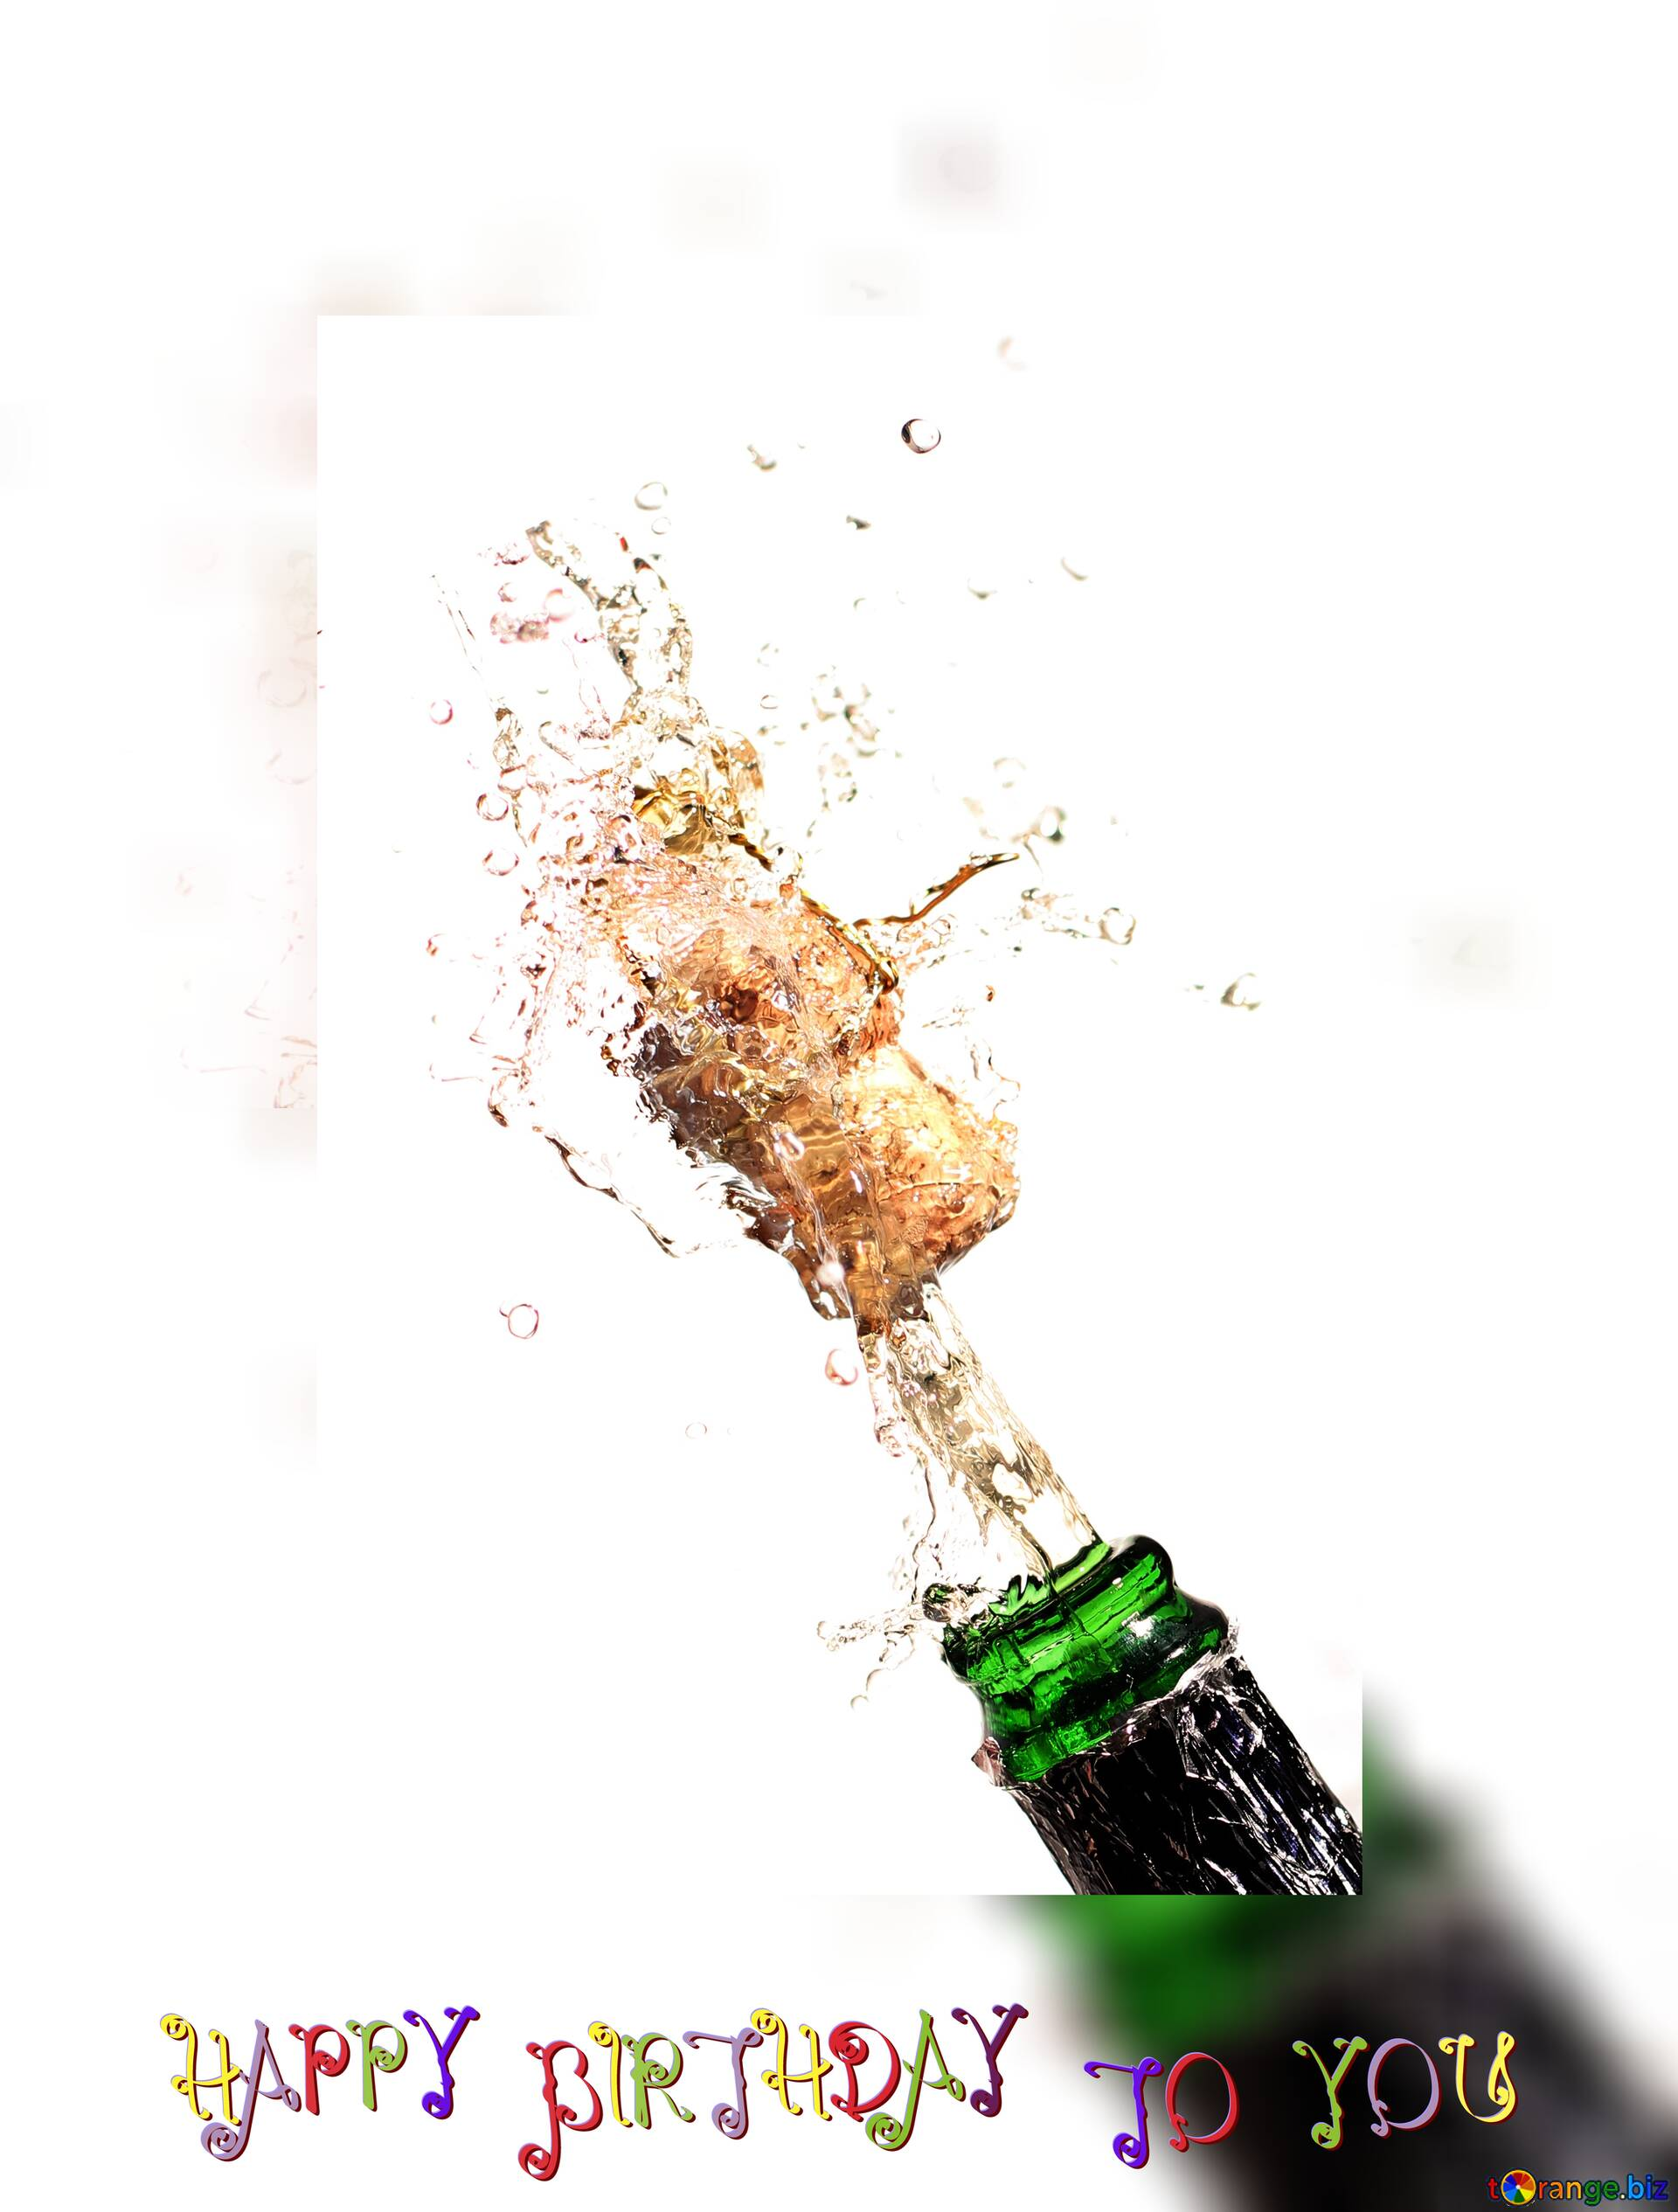 Download Free Picture Happy Birthday Card Champagne Bottle Out Flies On Cc By License Free Image Stock Torange Biz Fx 183669